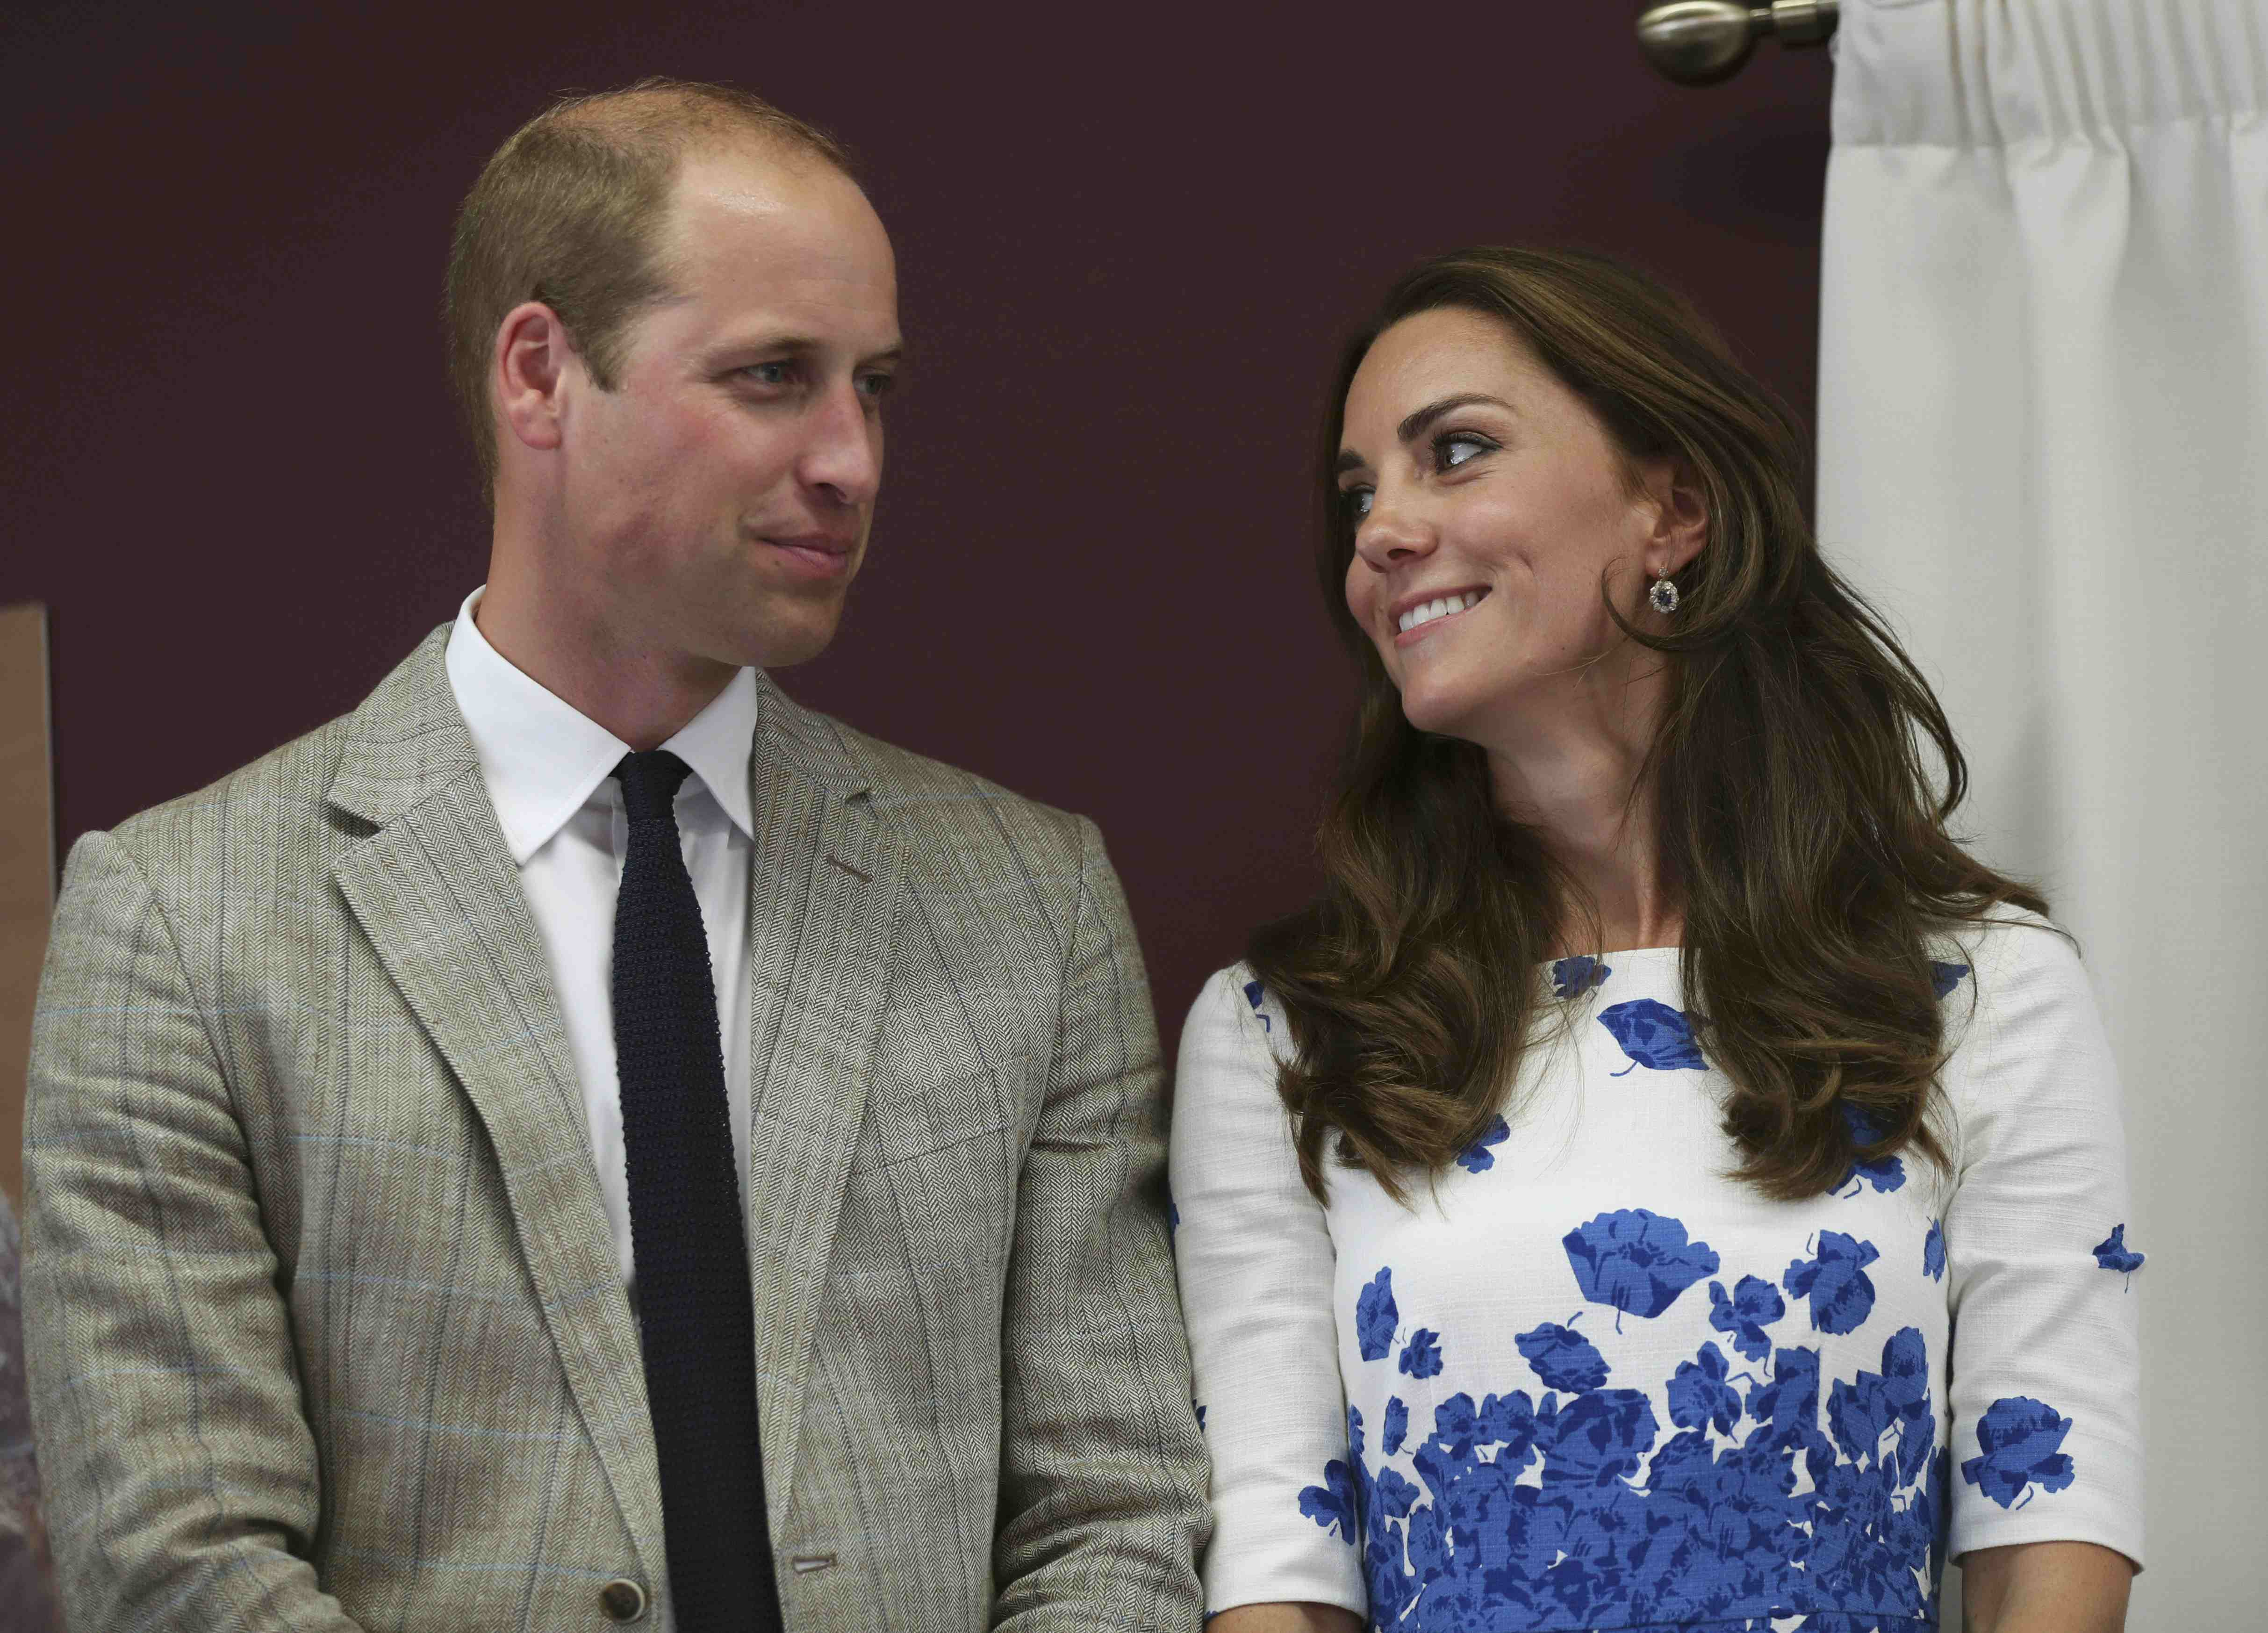 Prince William and Kate Middleton visit Hayward Tyler Luton on August 24, 2016. | Photo: GettyImages